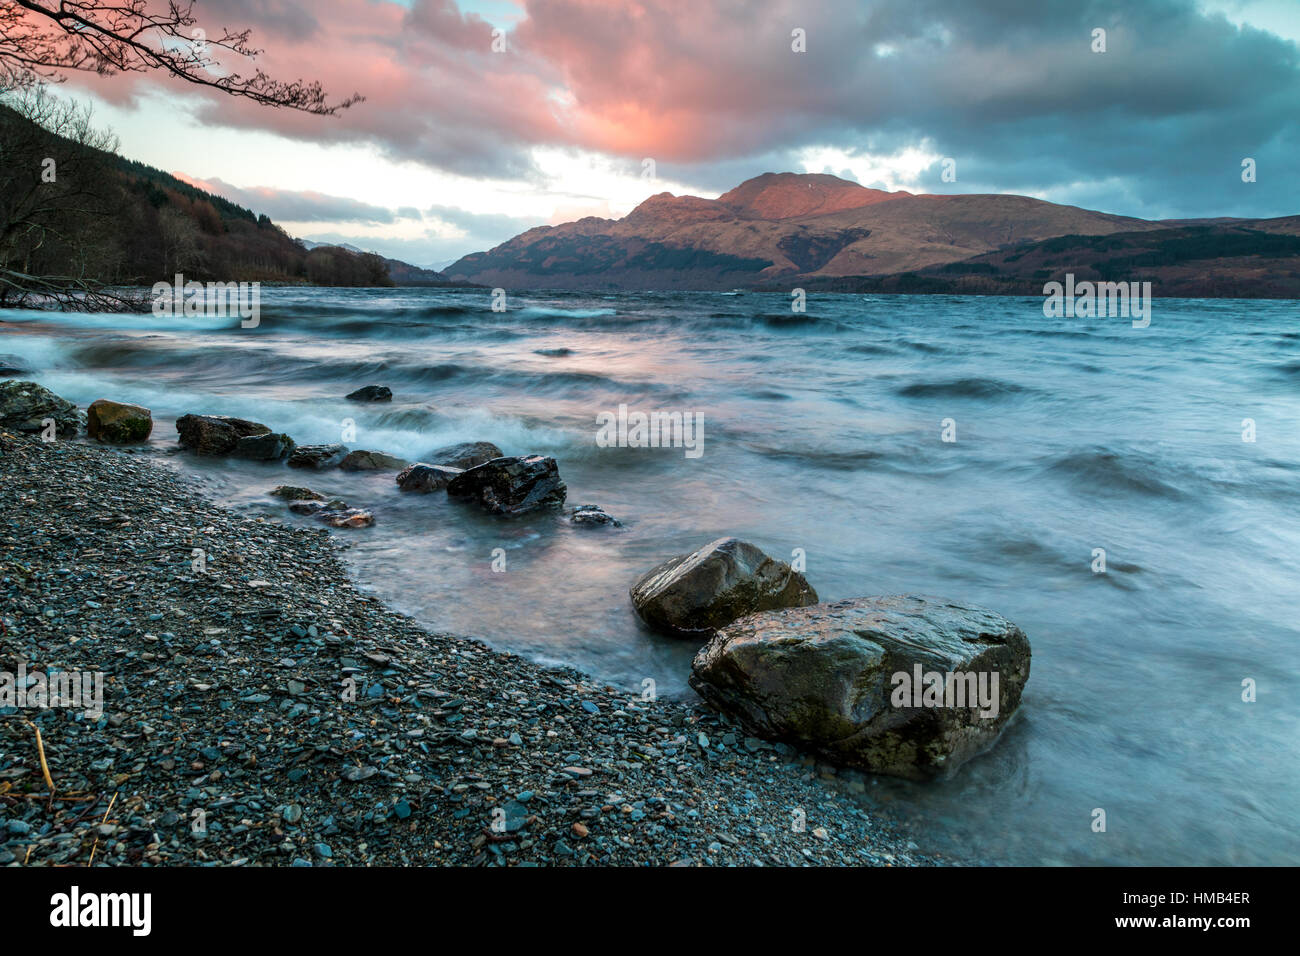 Ben Lomond from the west shore of Loch Lomond - Photographer : Brian Duffy - Stock Image